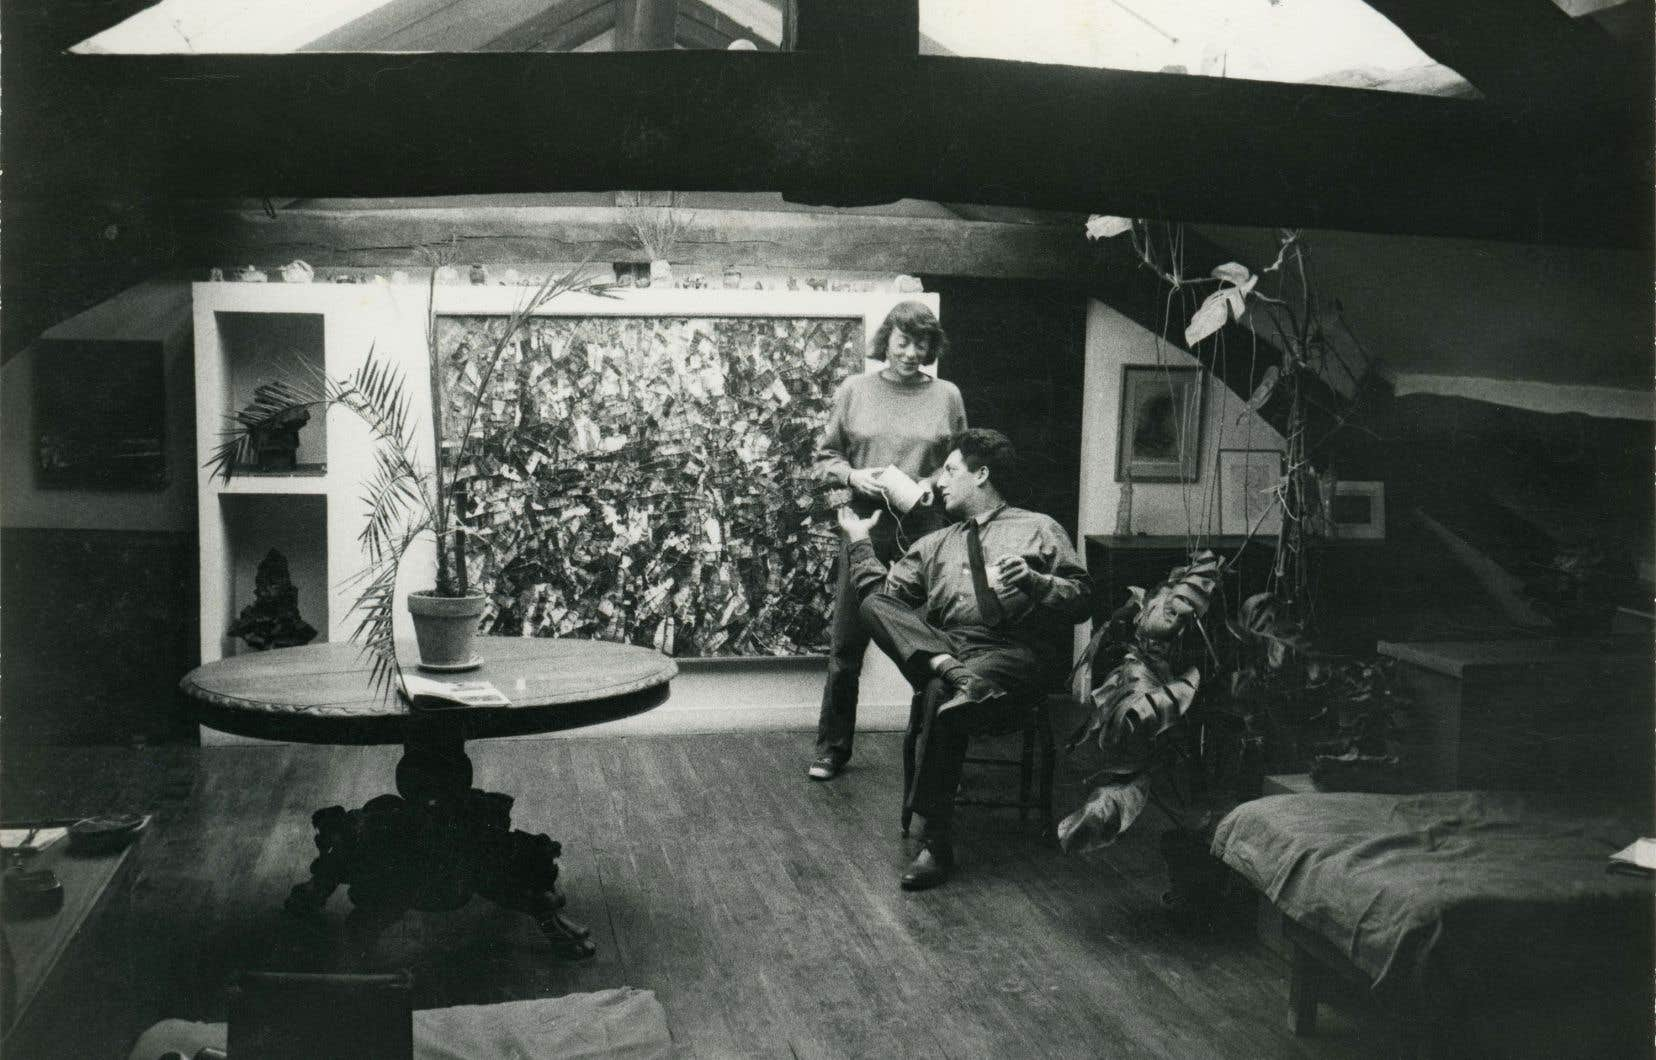 Joan Mitchell et Jean-Paul Riopelle dans leur atelier-appartement de Paris en 1963